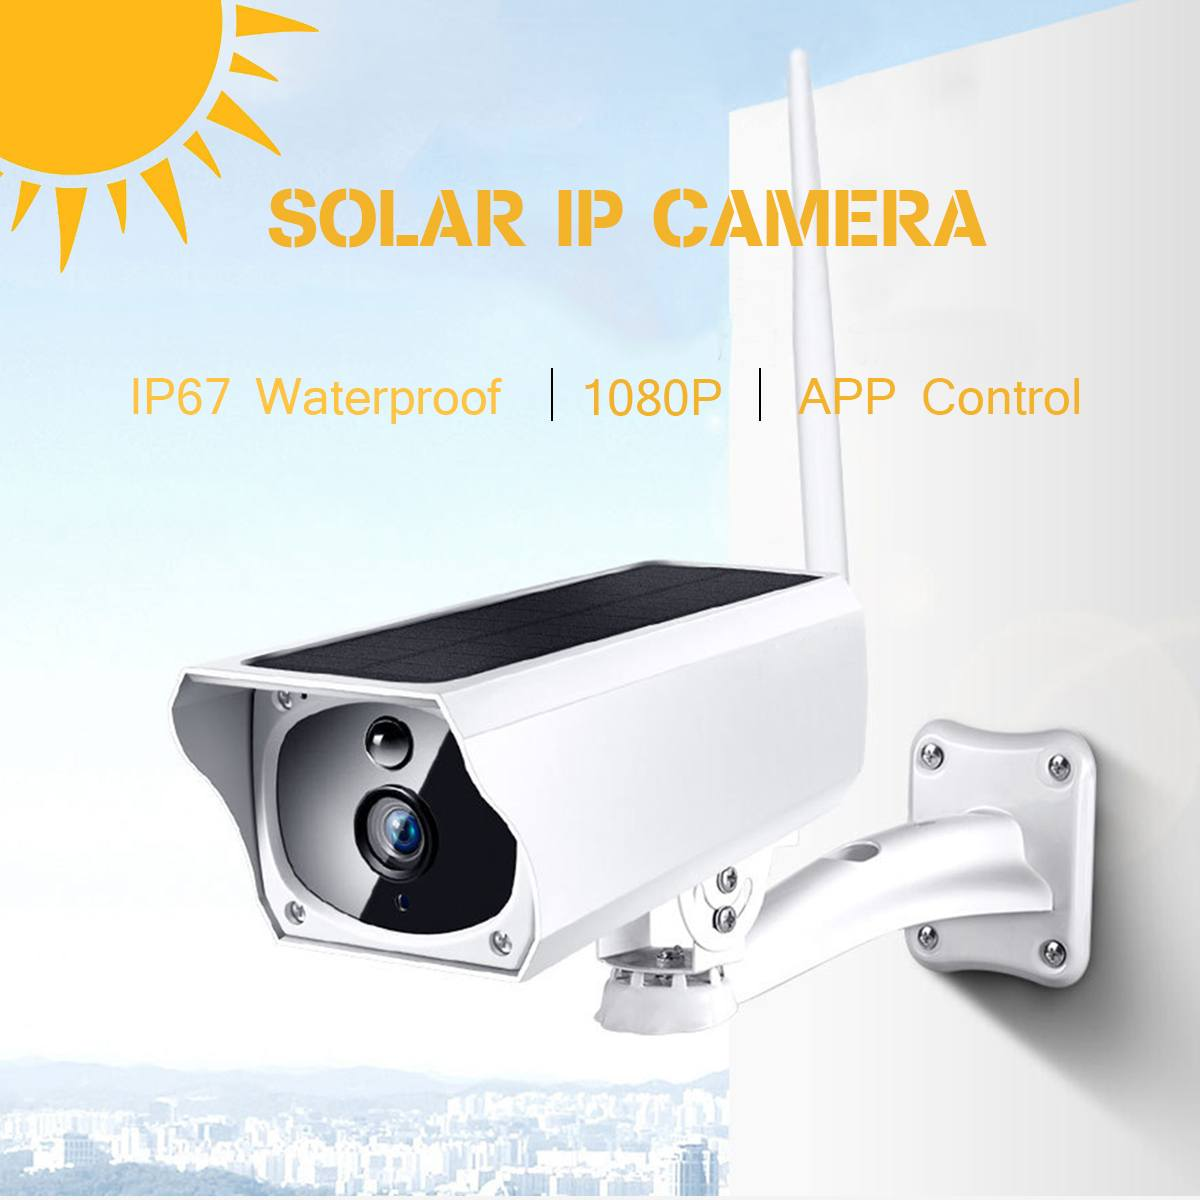 1080P Security Solar Camera Wireless Remote Monitoring Outdoor Waterproof PIR Motion Sensor Wifi IP Camera Built in Battery